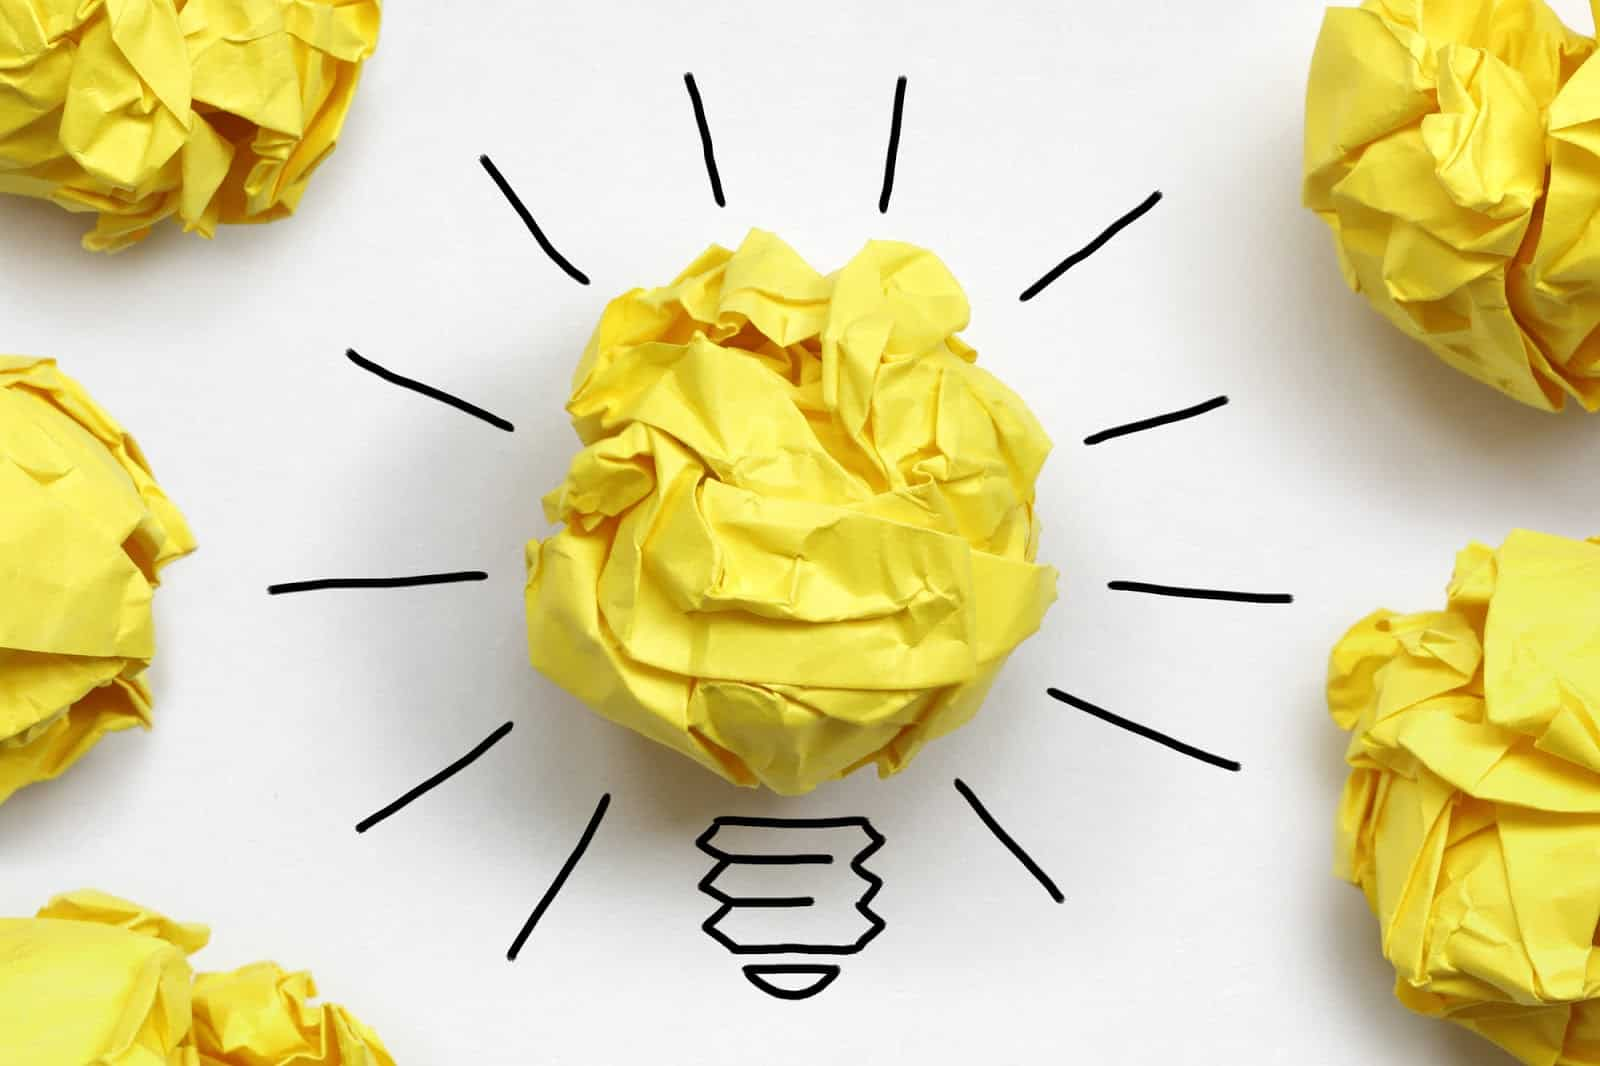 Validate Your Business Idea Idea Paper Light Bulb